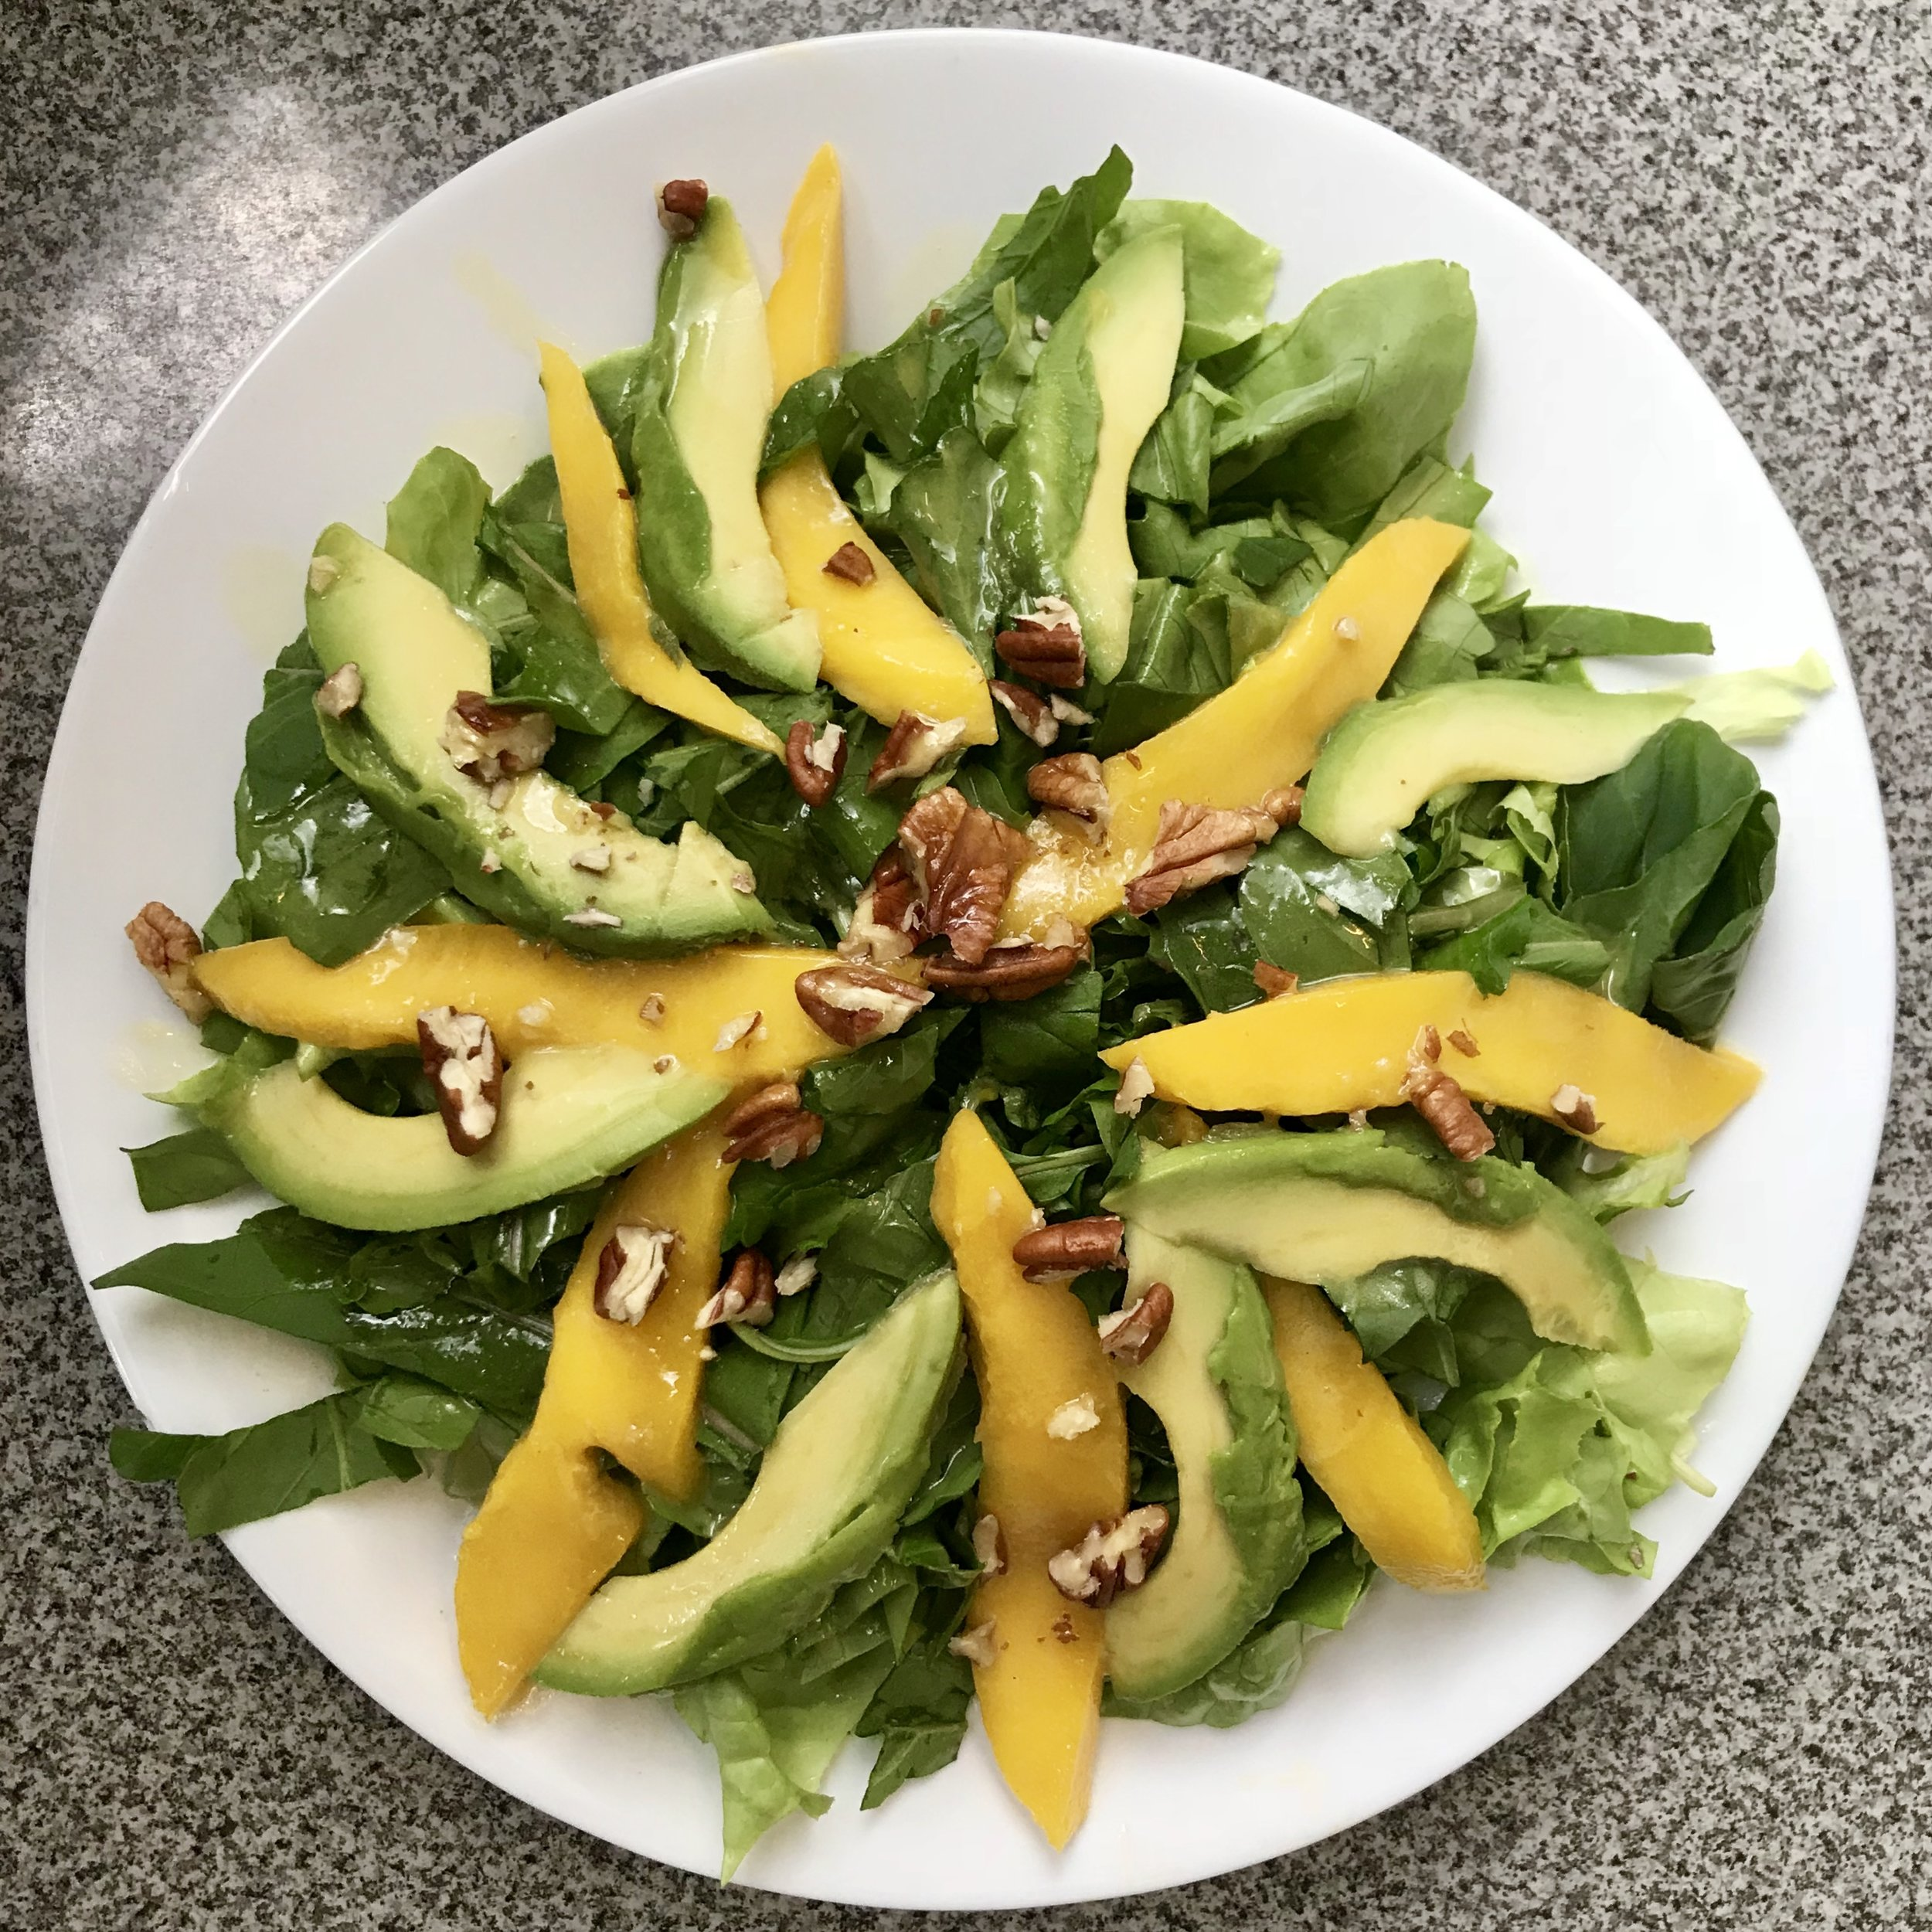 This salad was definitely a winner. It would be a great meal during Whole30, without the dressing.